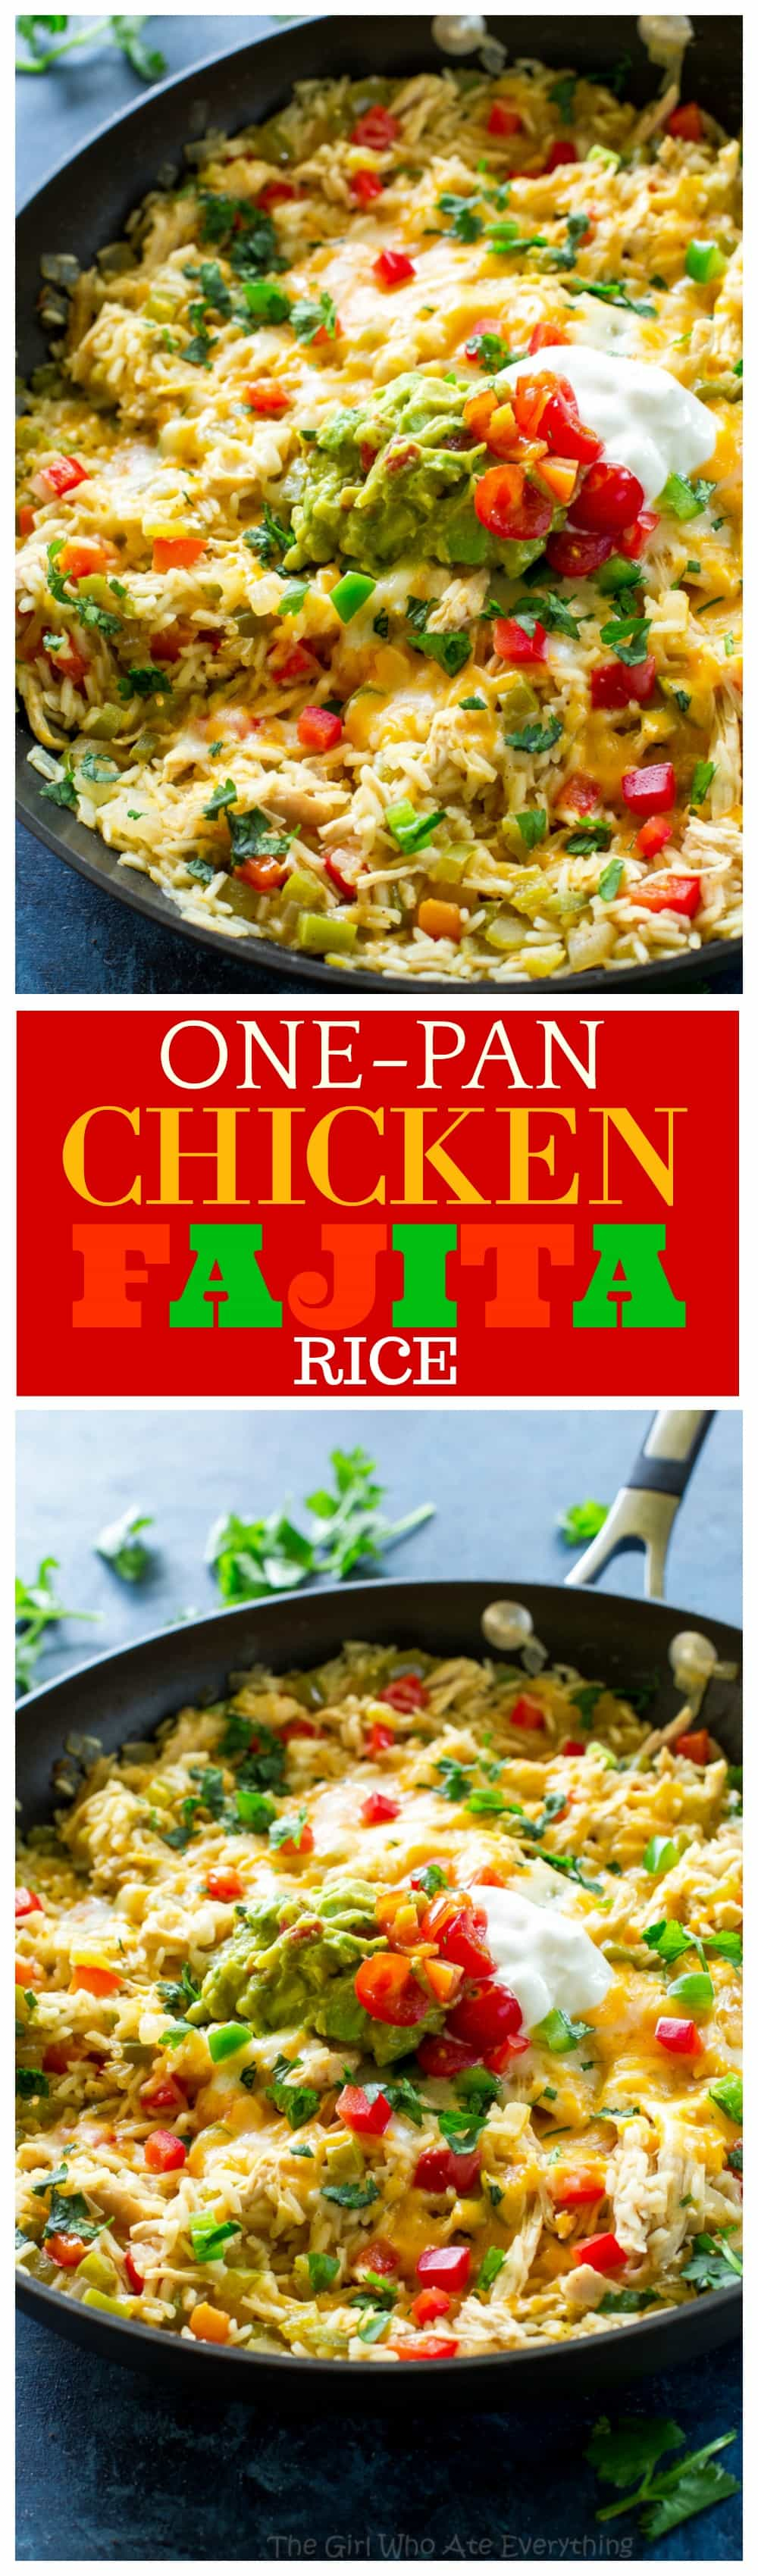 One-Pan Chicken Fajita Rice - an easy Mexican dinner read in under 30 minutes. #onepan #chicken #rice #skillet #mexican #easydinner